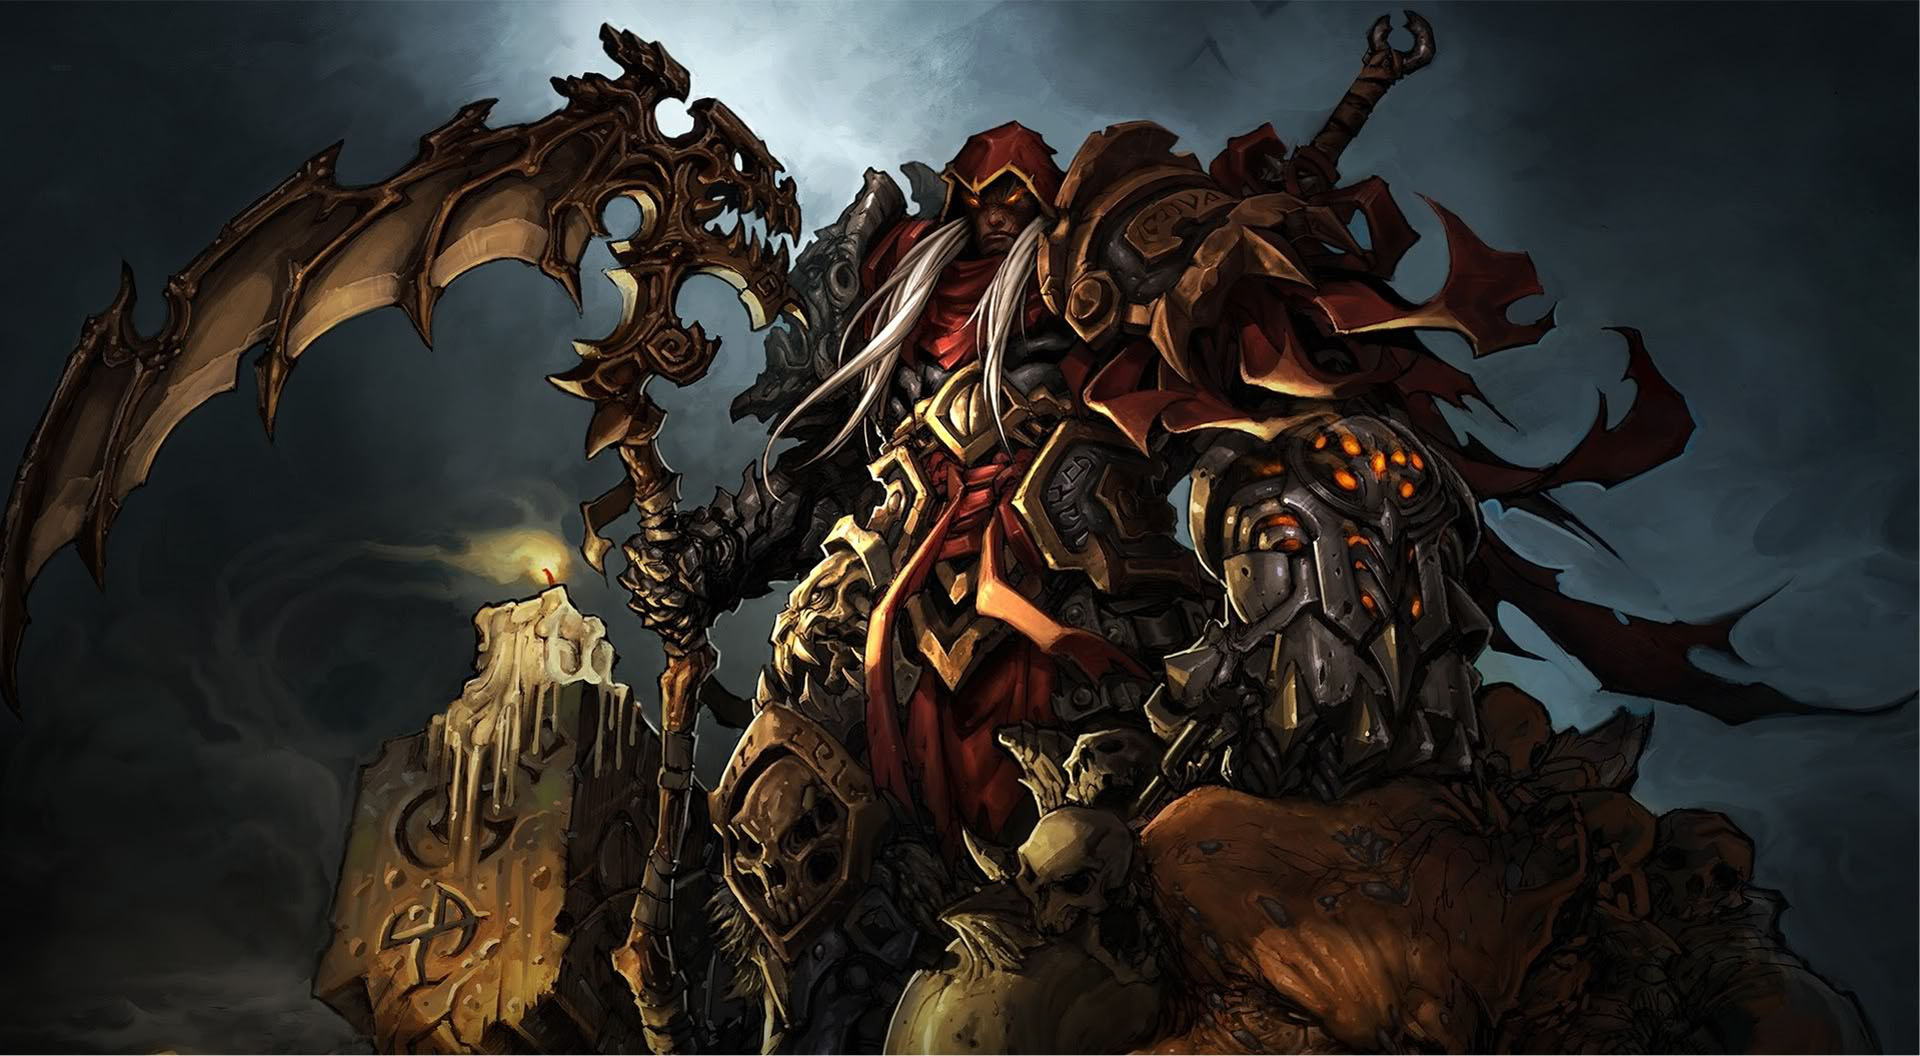 Concept Art   Action Rpg Games Wallpaper Image featuring Darksiders 1920x1056